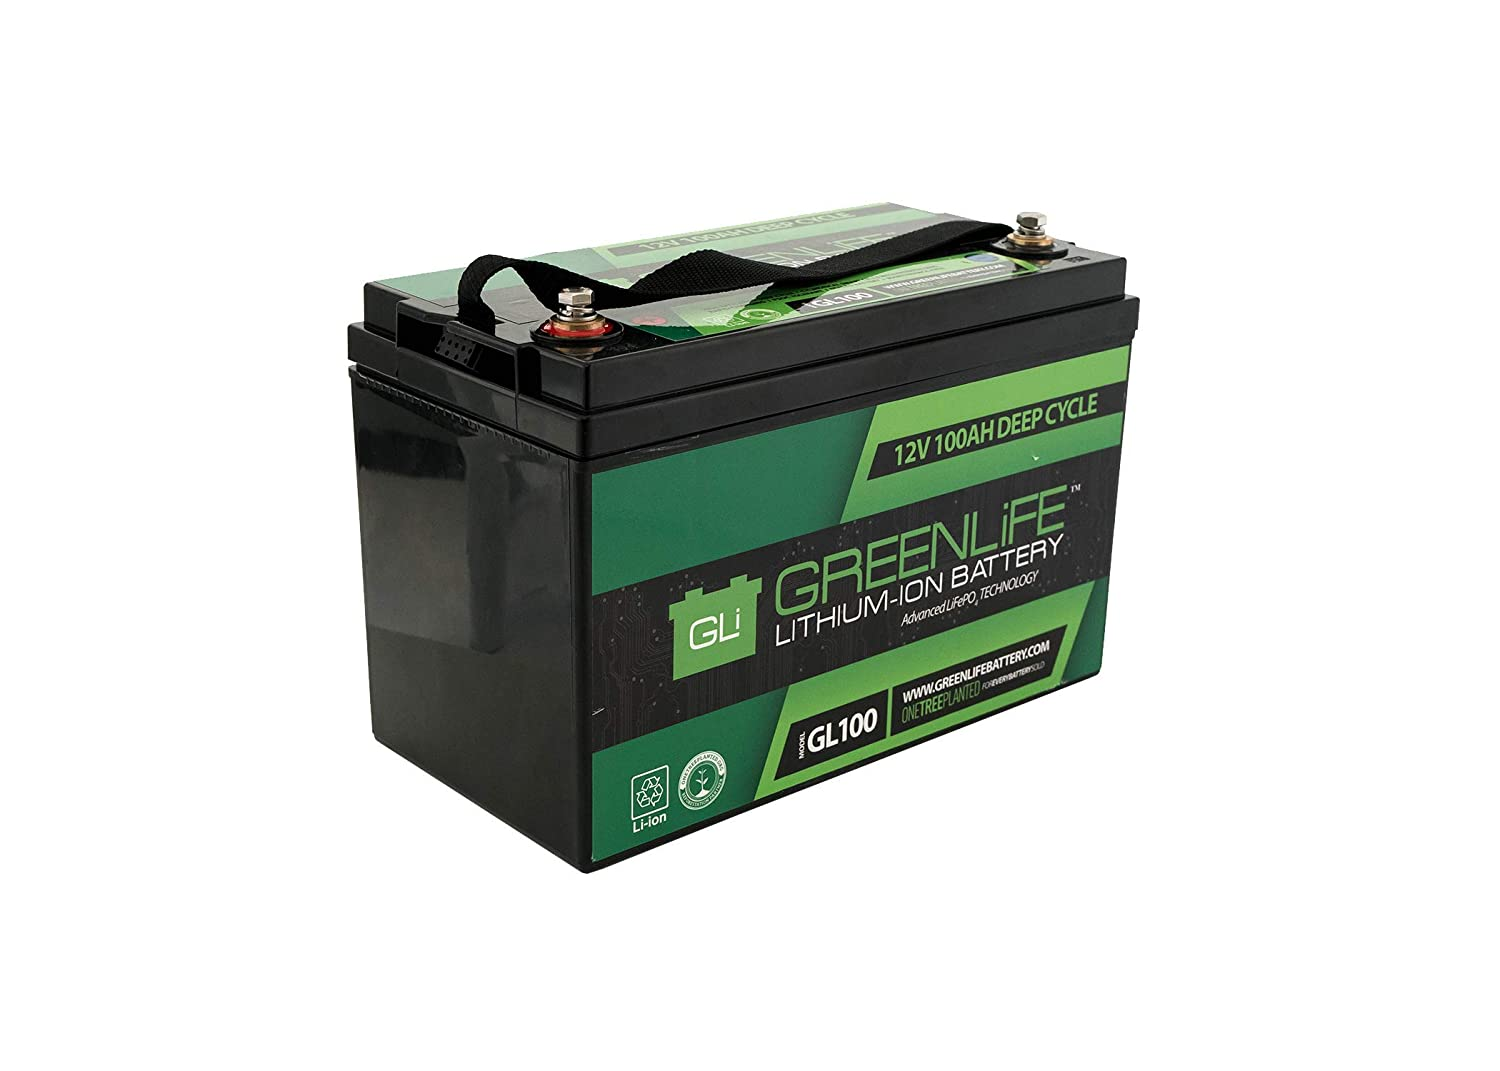 Lithium Ion Battery >> Greenlife Battery Gl100 100ah 12v Lithium Ion Battery